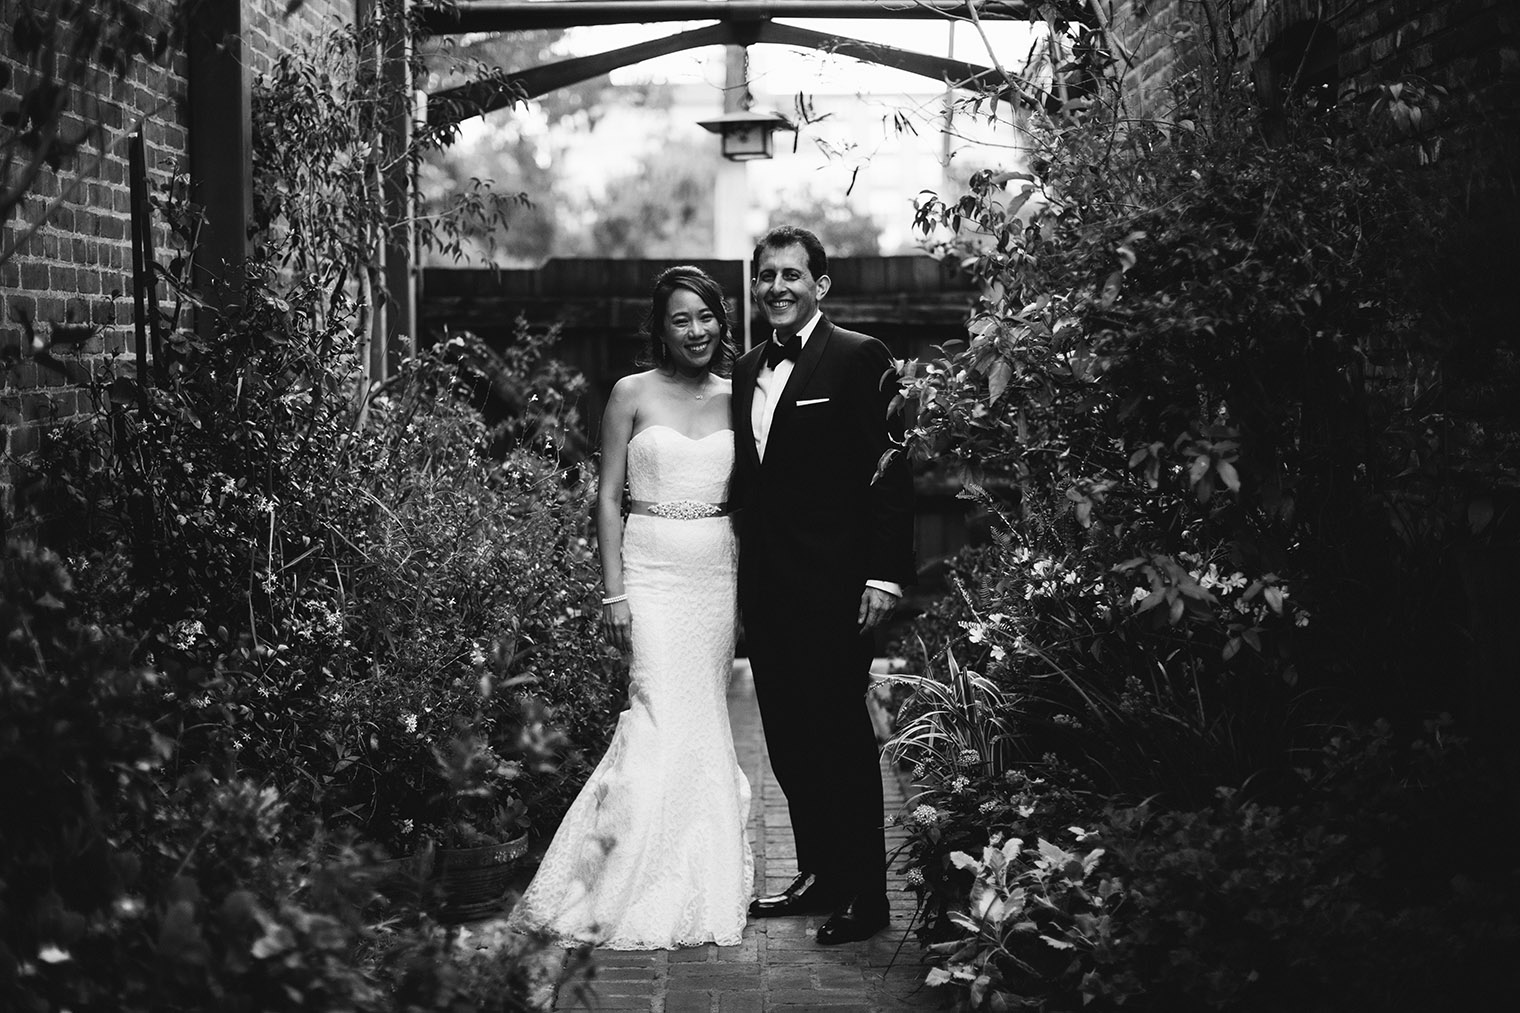 Happy Trails wedding photographer